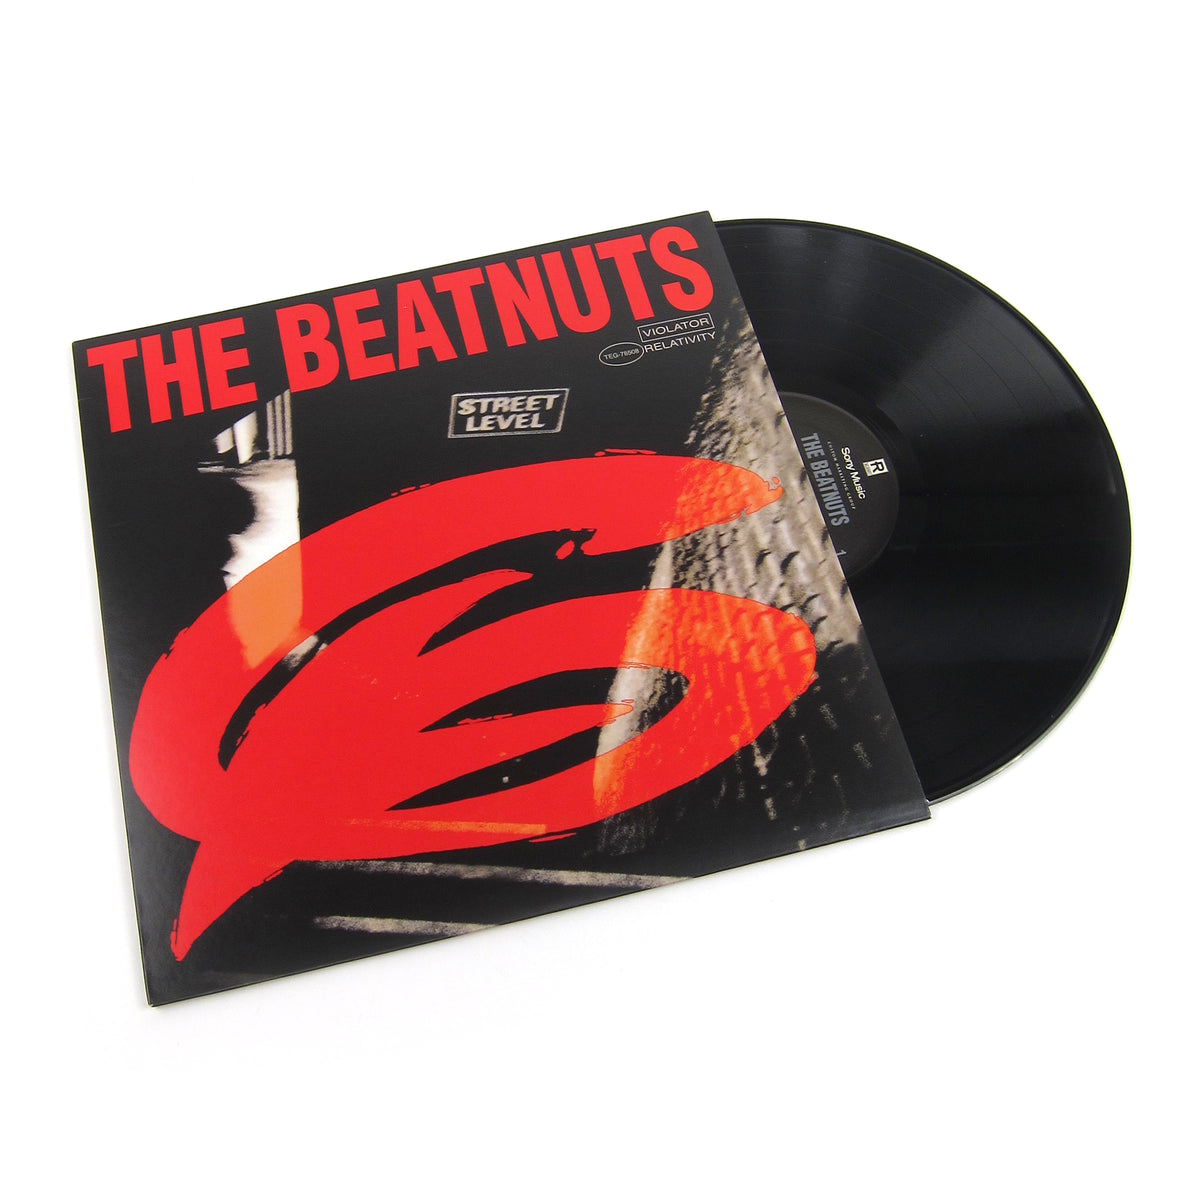 The Beatnuts: The Beatnuts Vinyl 2LP